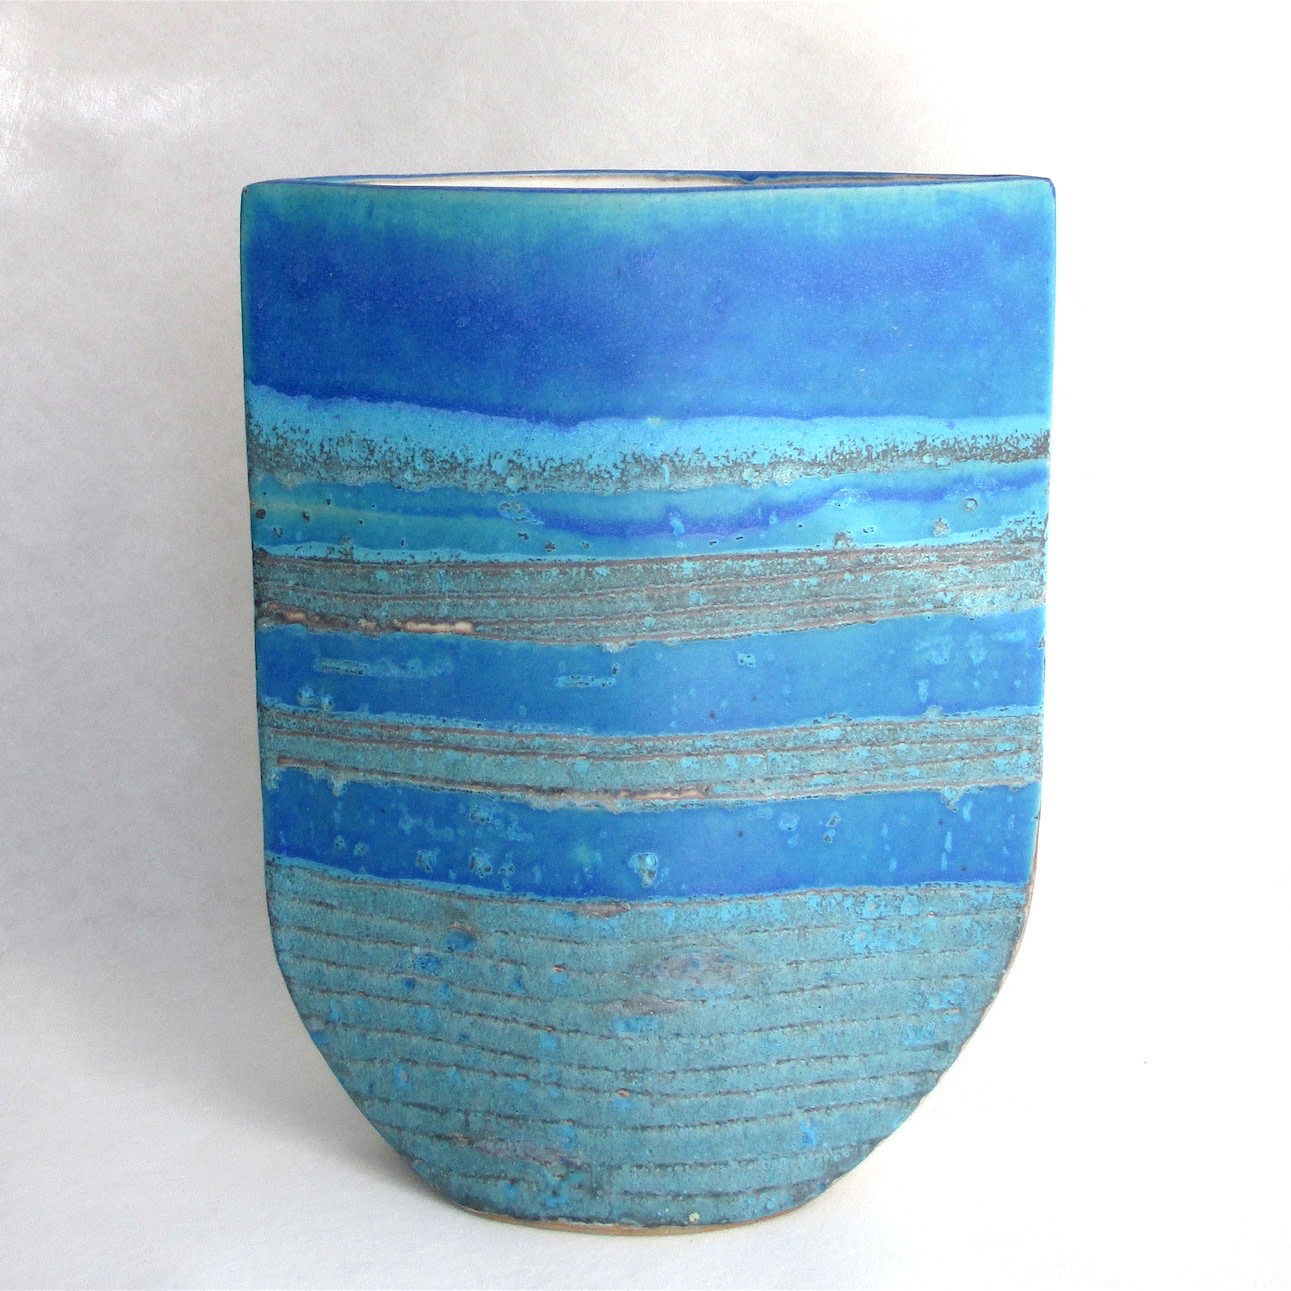 "<span class=""link fancybox-details-link""><a href=""/artists/44-sarah-perry/works/6271-sarah-perry-blue-totem-ellipse-2019/"">View Detail Page</a></span><div class=""artist""><strong>Sarah Perry</strong></div> <div class=""title""><em>Blue Totem Ellipse</em>, 2019</div> <div class=""signed_and_dated"">maker's impressed stamp to base</div> <div class=""medium"">hand-built stoneware</div> <div class=""dimensions"">h 31.5 cm, w 24.5 cm</div><div class=""copyright_line"">Own Art: £ 37.50 x 10 Months, 0% APR</div>"